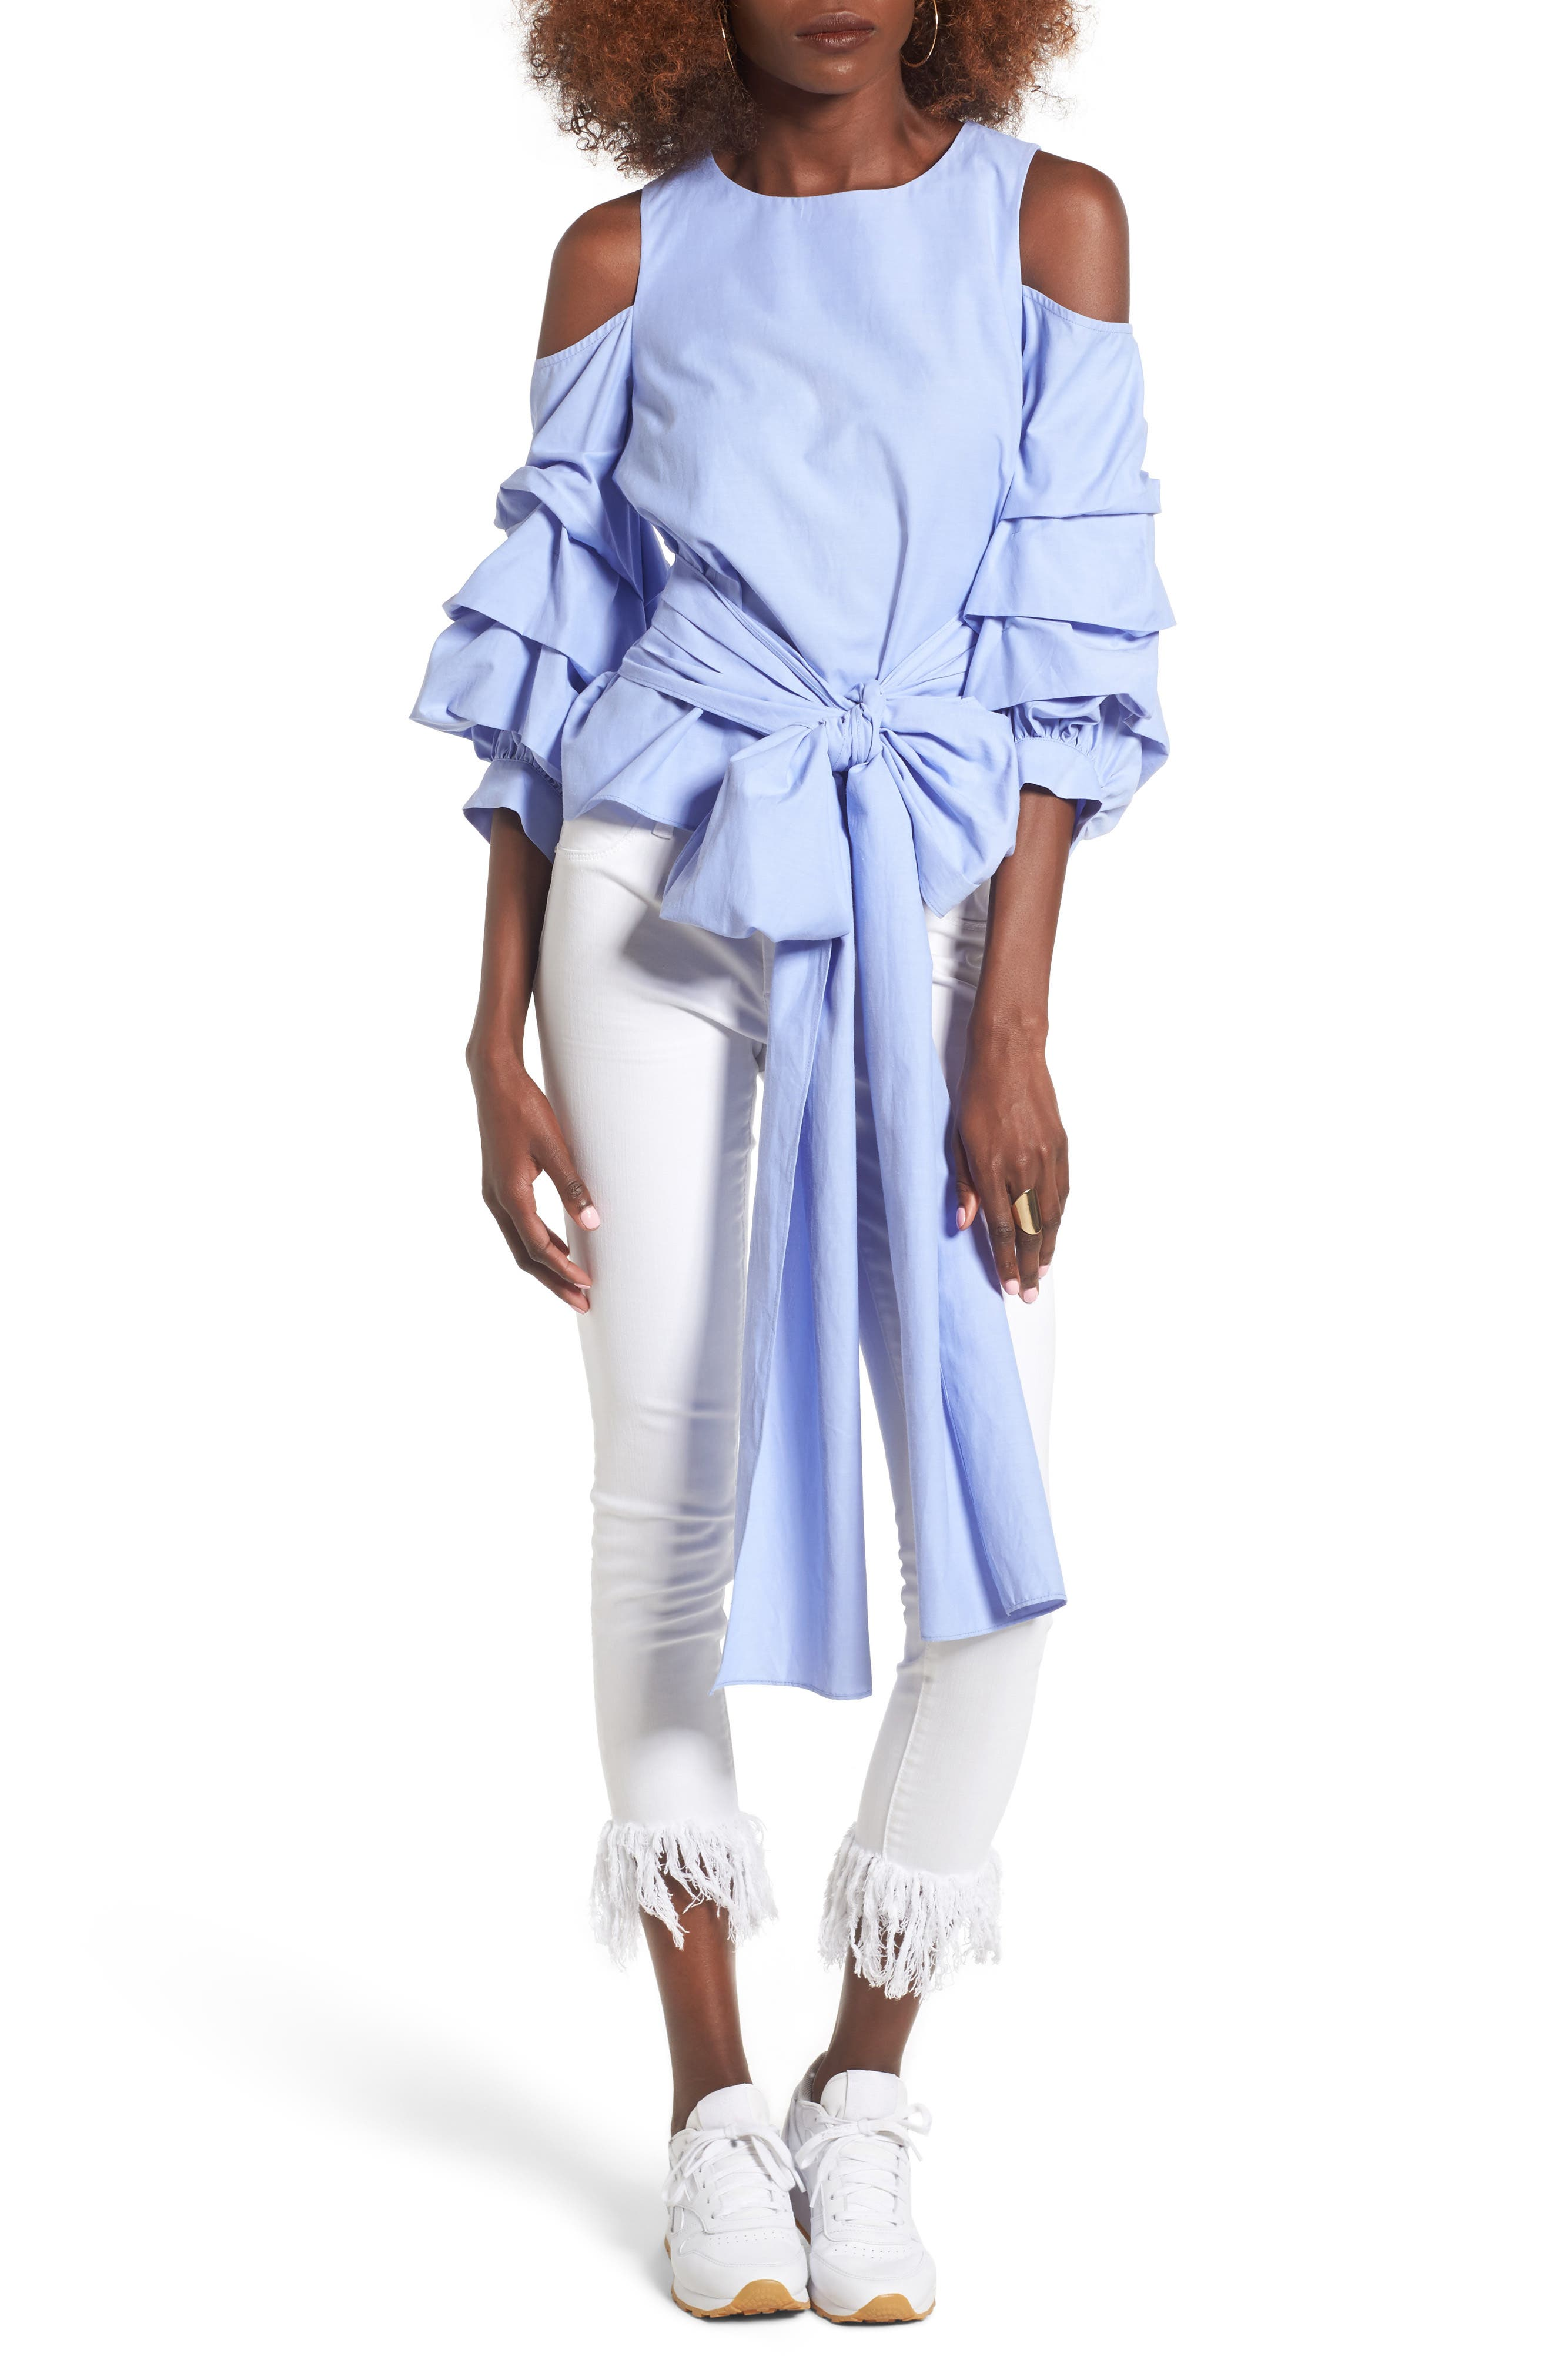 Alternate Image 1 Selected - J.O.A. Ruffle Sleeve Tie Front Top